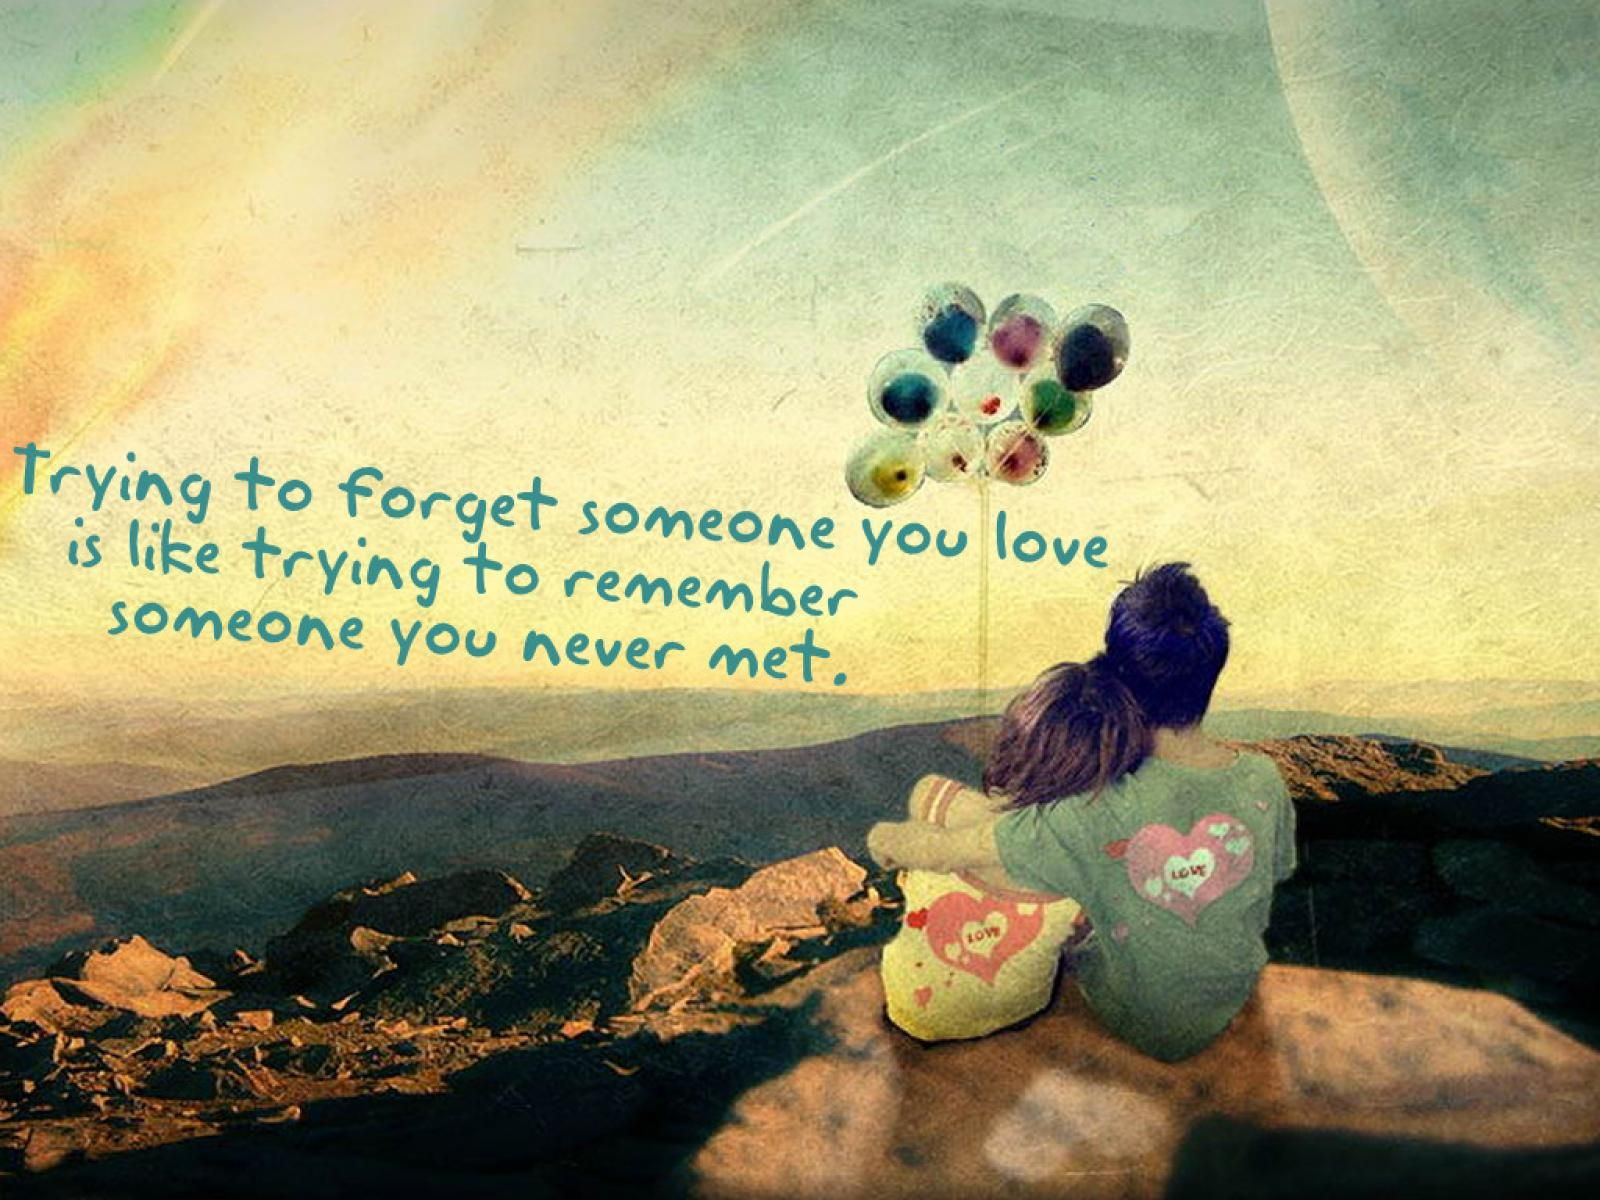 Best love quote that I love: Trying to forget someone you lobe is like  trying